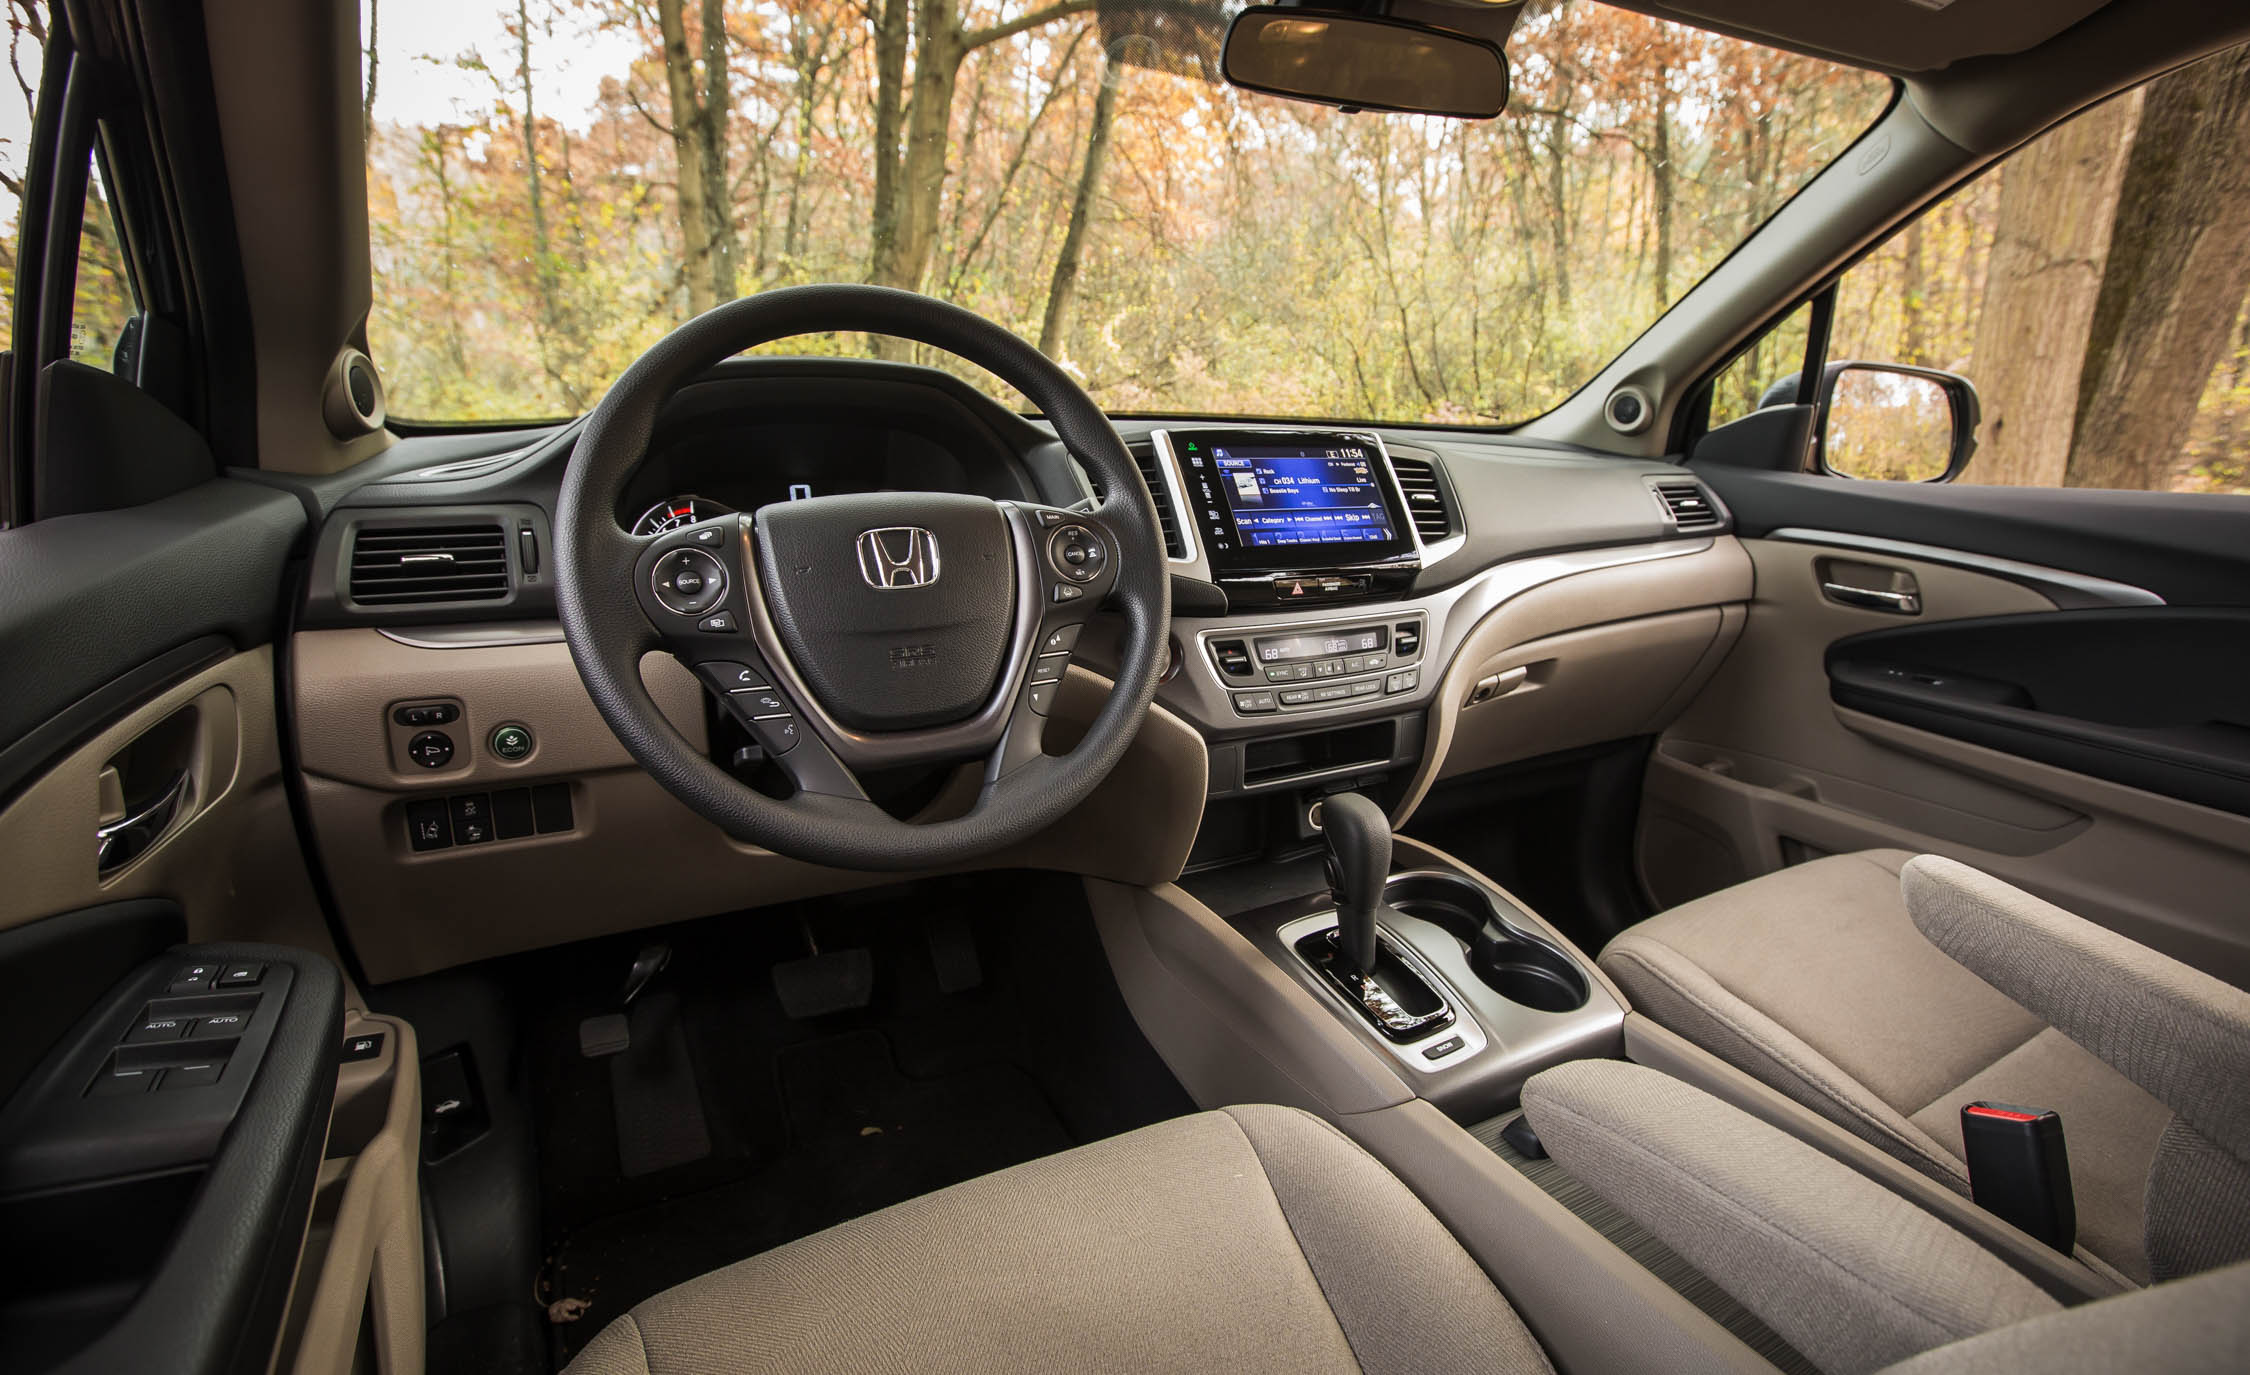 2016 Honda Pilot Review 8994 Cars Performance Reviews And Test